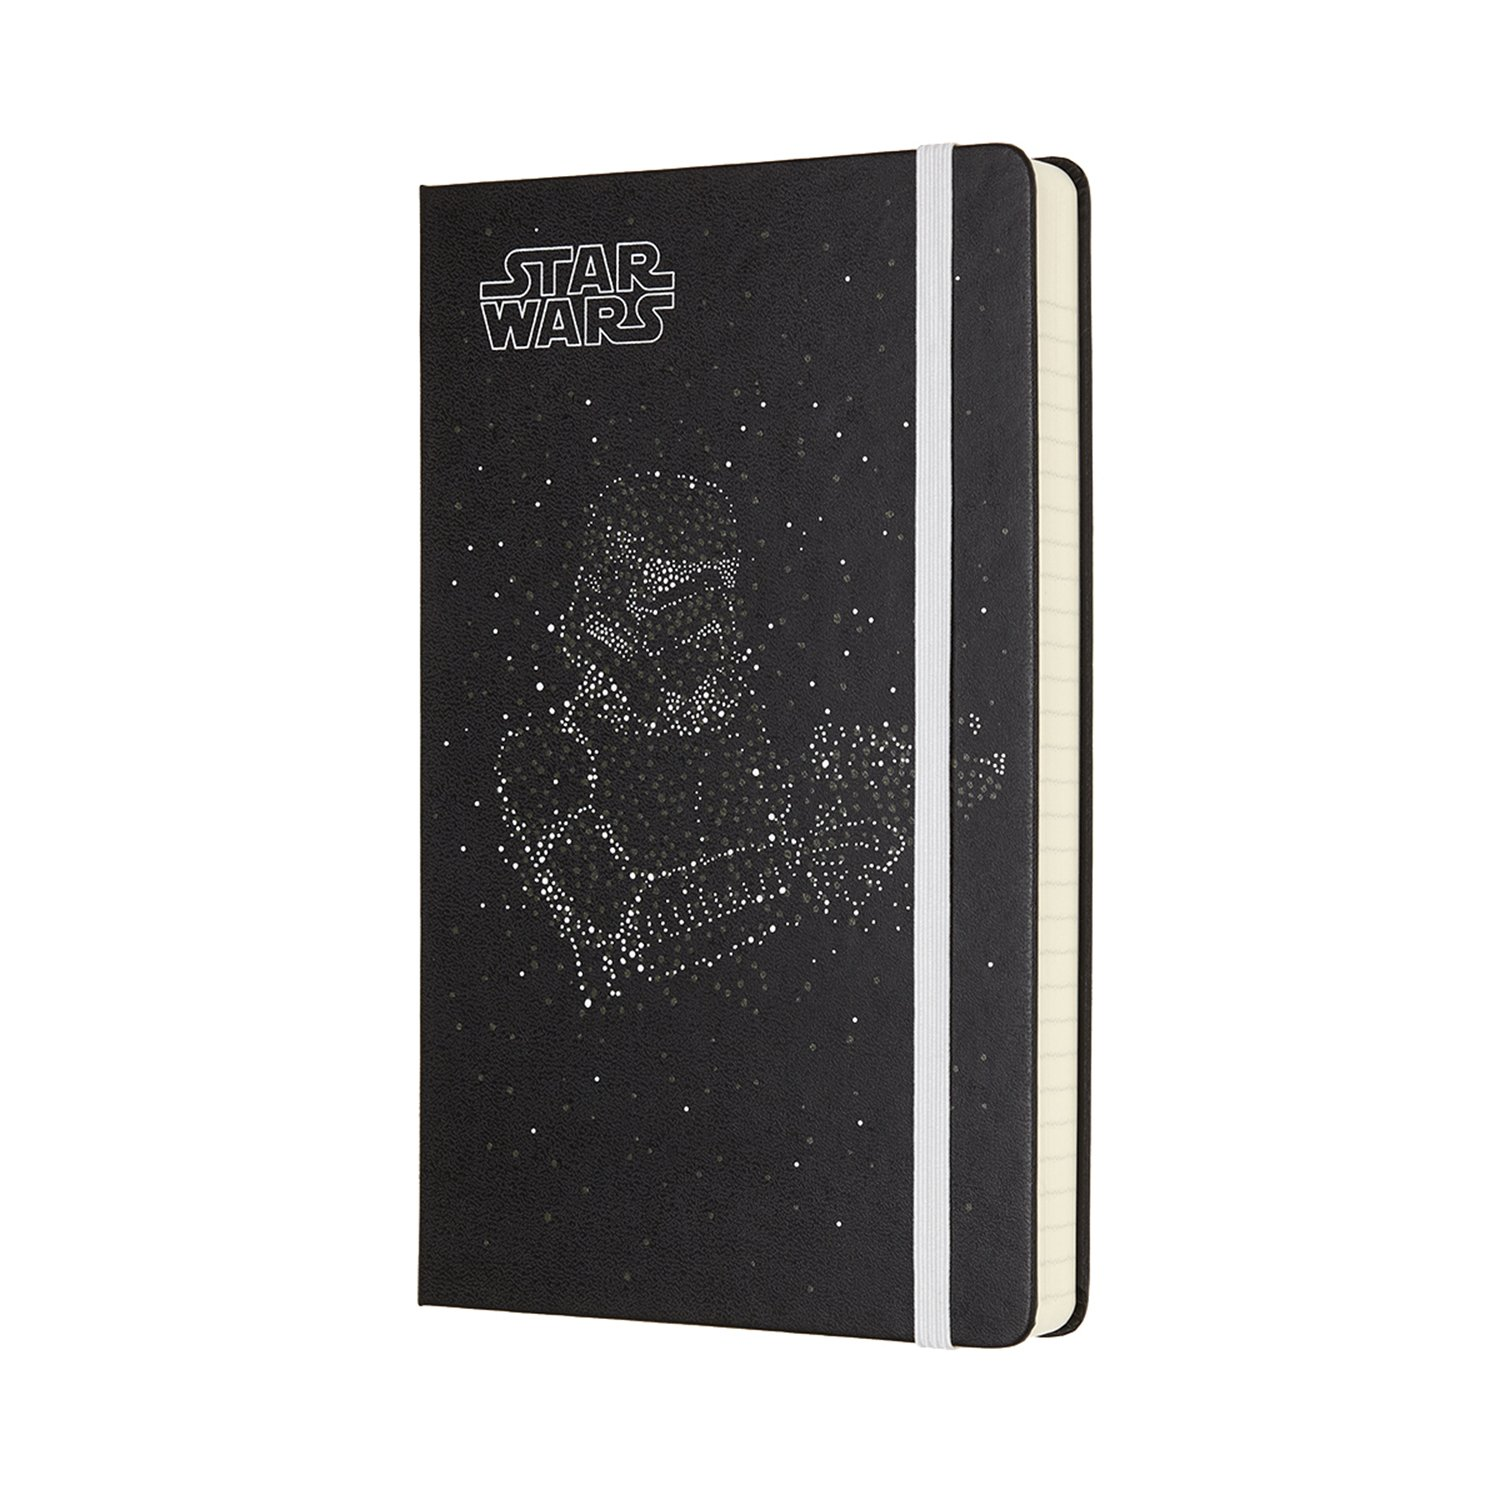 Moleskine Limited Edition Star Wars, 12 Month Daily Planner, Large, Stormtrooper (5 x 8.25)